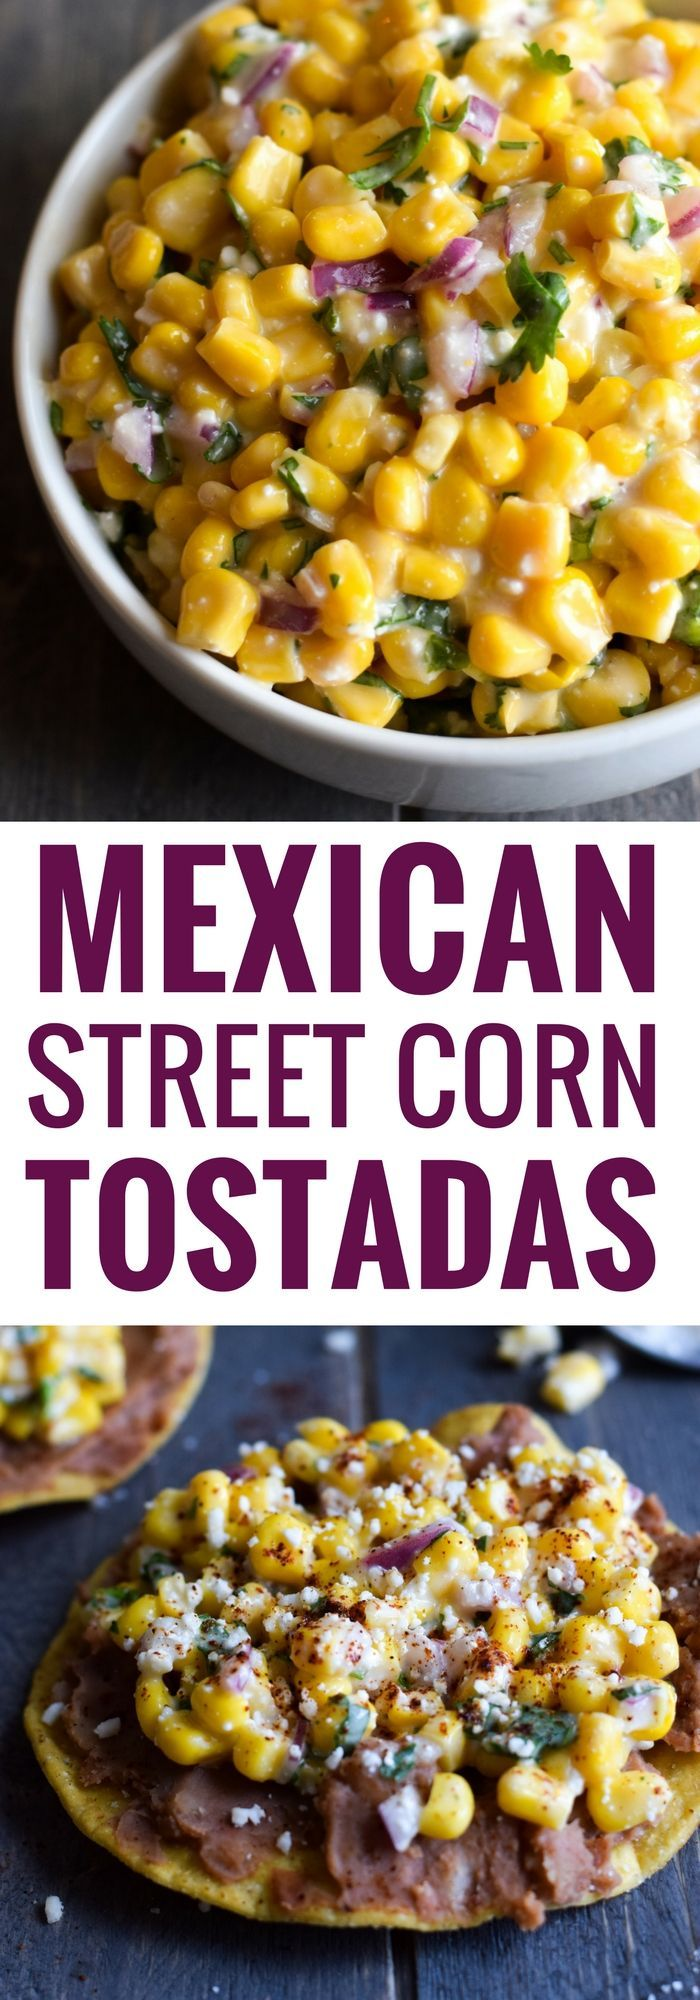 ADDED TO PTE  Ready in only 15 minutes, these Mexican Street Corn Tostadas made with canned corn, cotija cheese and chopped cilantro make for an easy lunch or quick dinner that's also gluten free and vegetarian.